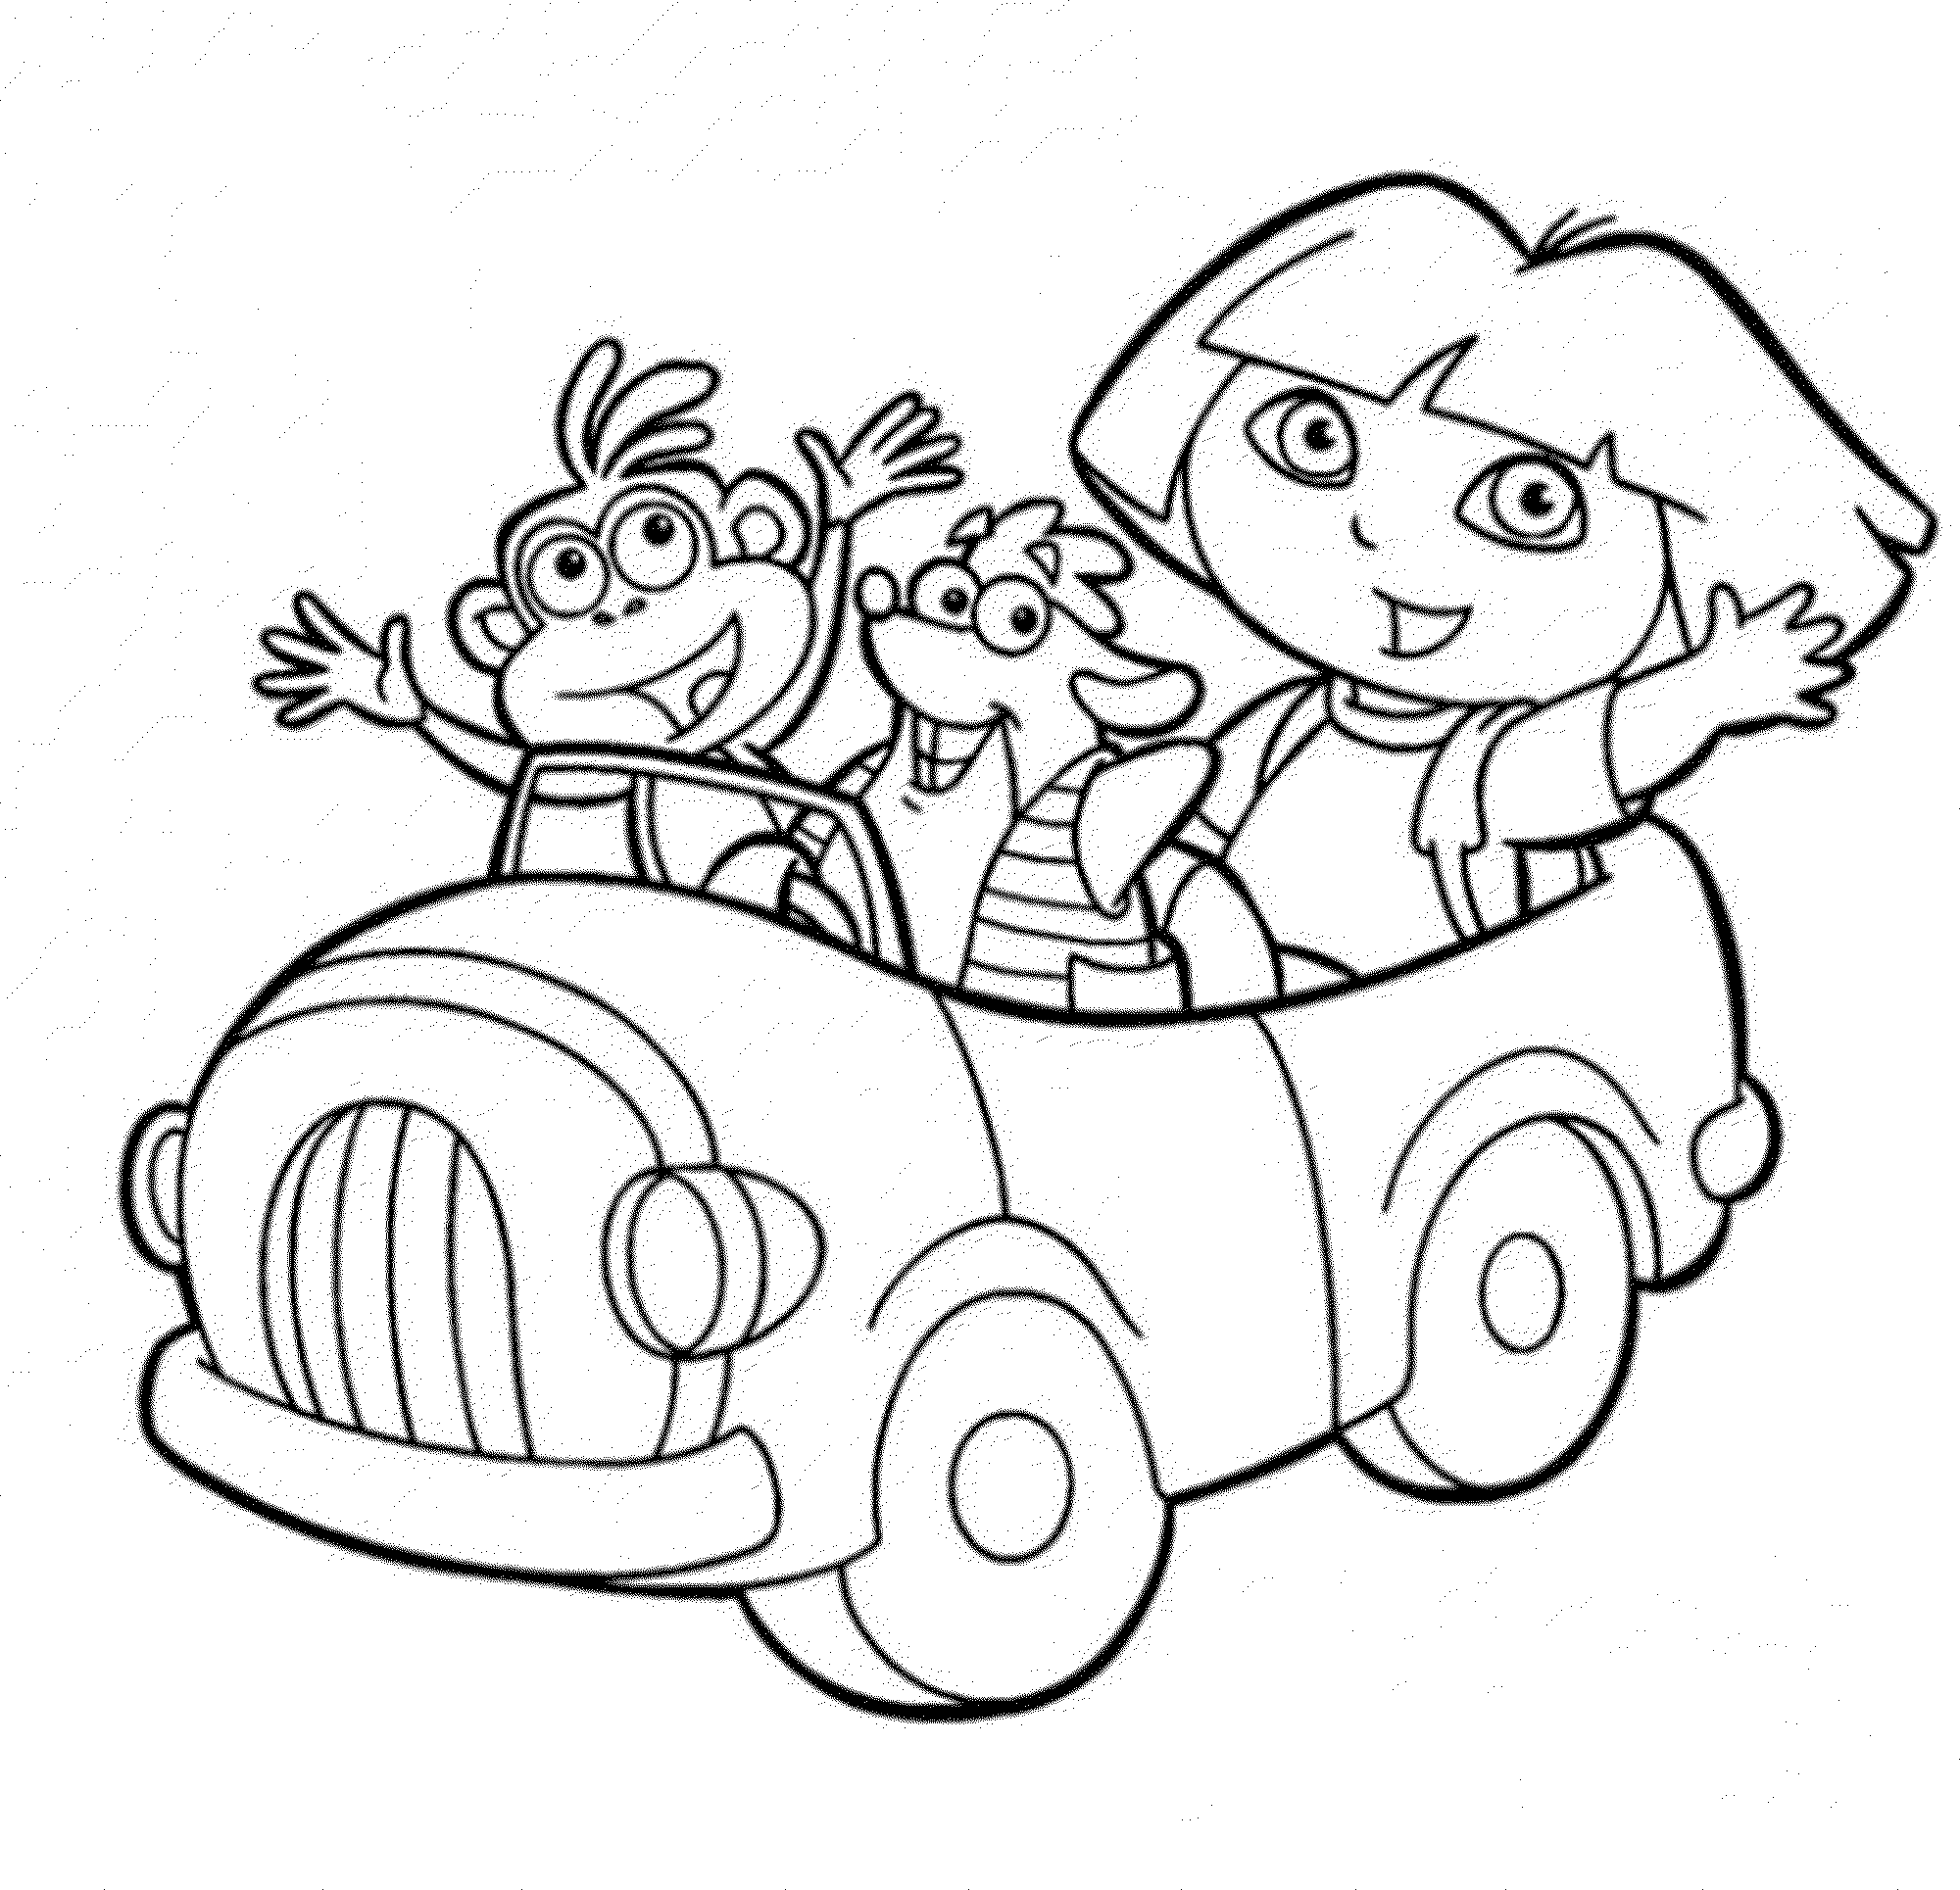 dora the explorer images to print print download dora coloring pages to learn new things to dora print the images explorer